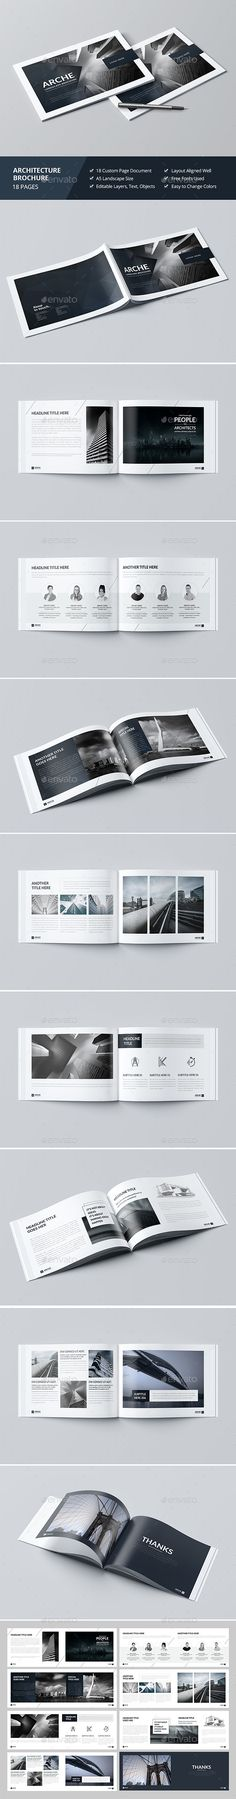 Haweya Architecture Brochure Template InDesign INDD. Download here: https://graphicriver.net/item/haweya-architecture-brochure/17447410?ref=ksioks